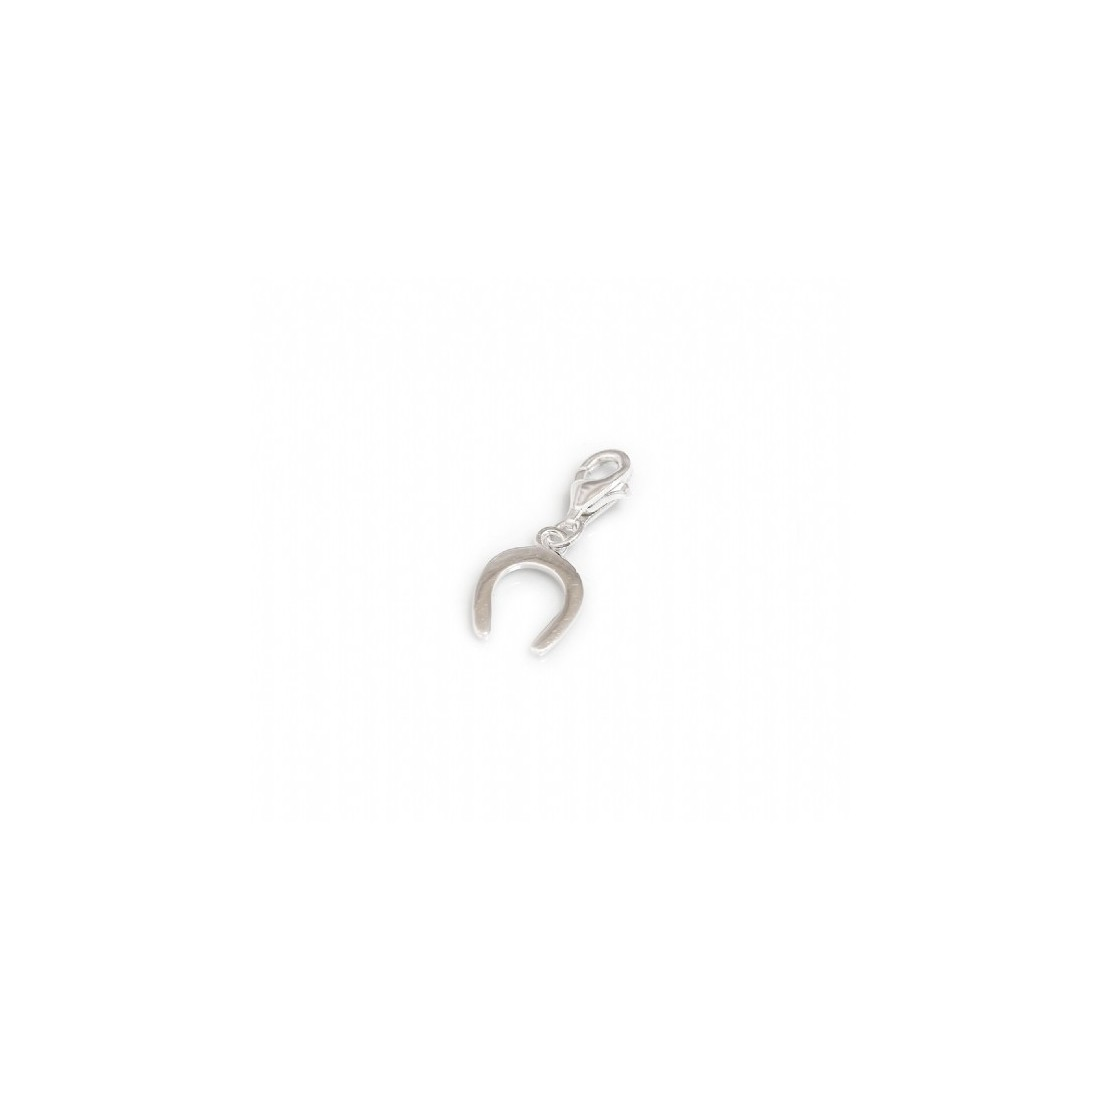 Exclusive Sterling Silver Horseshoe Charm